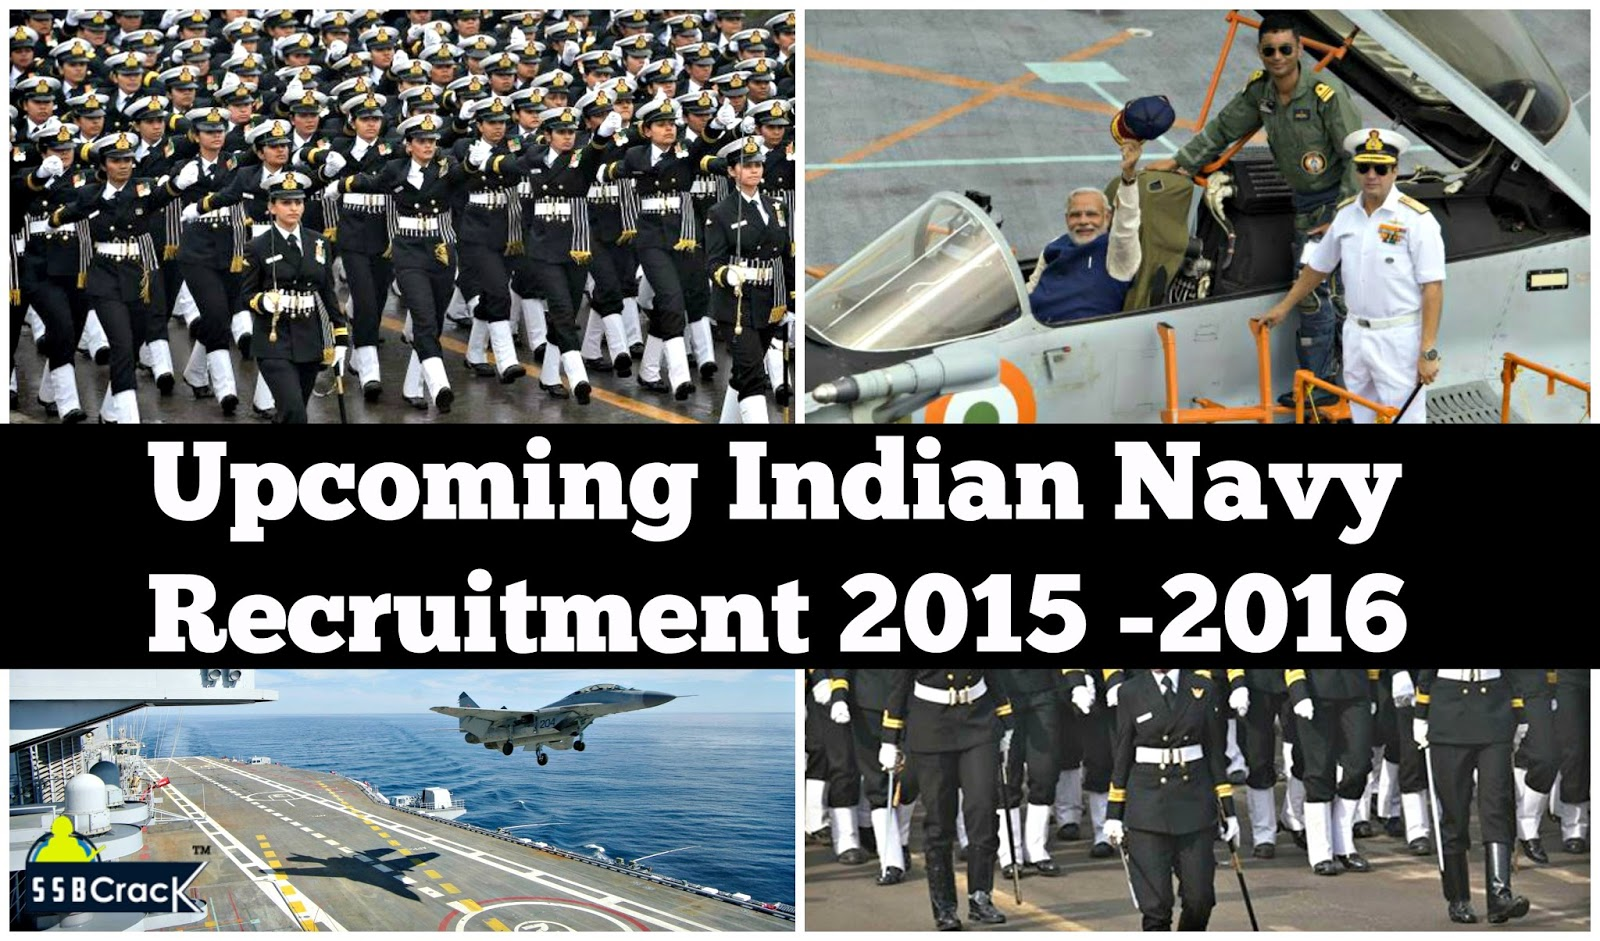 Upcoming Indian Navy Recruitment 2015 -2016